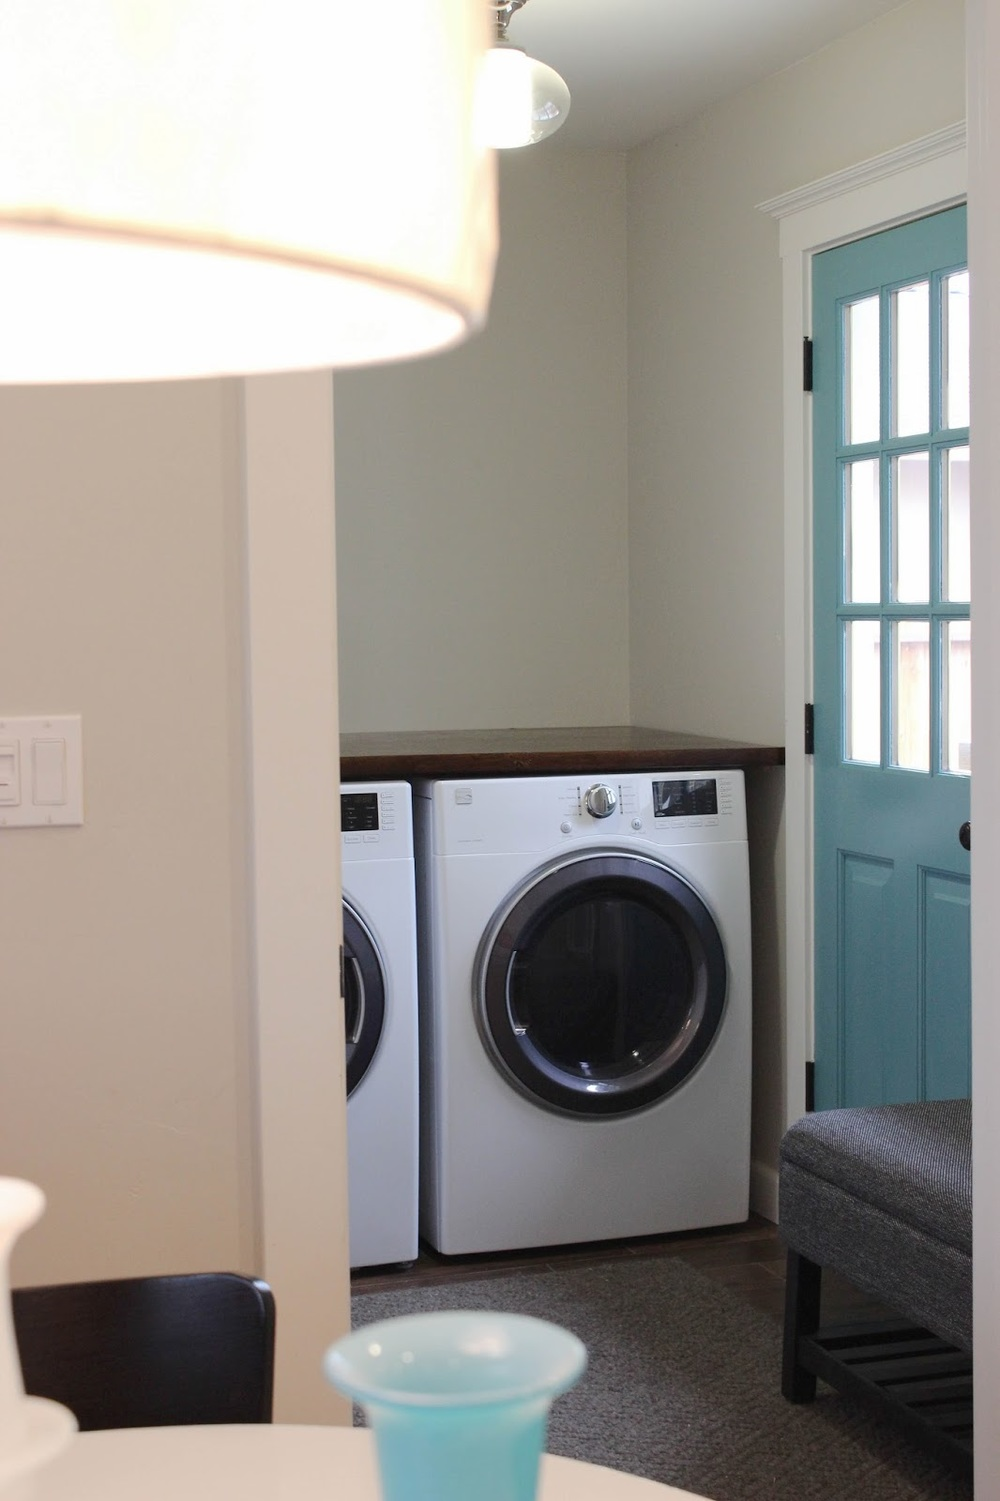 Countertop Options For Laundry Room : DIY Laundry Room Countertop ? Chic Little House